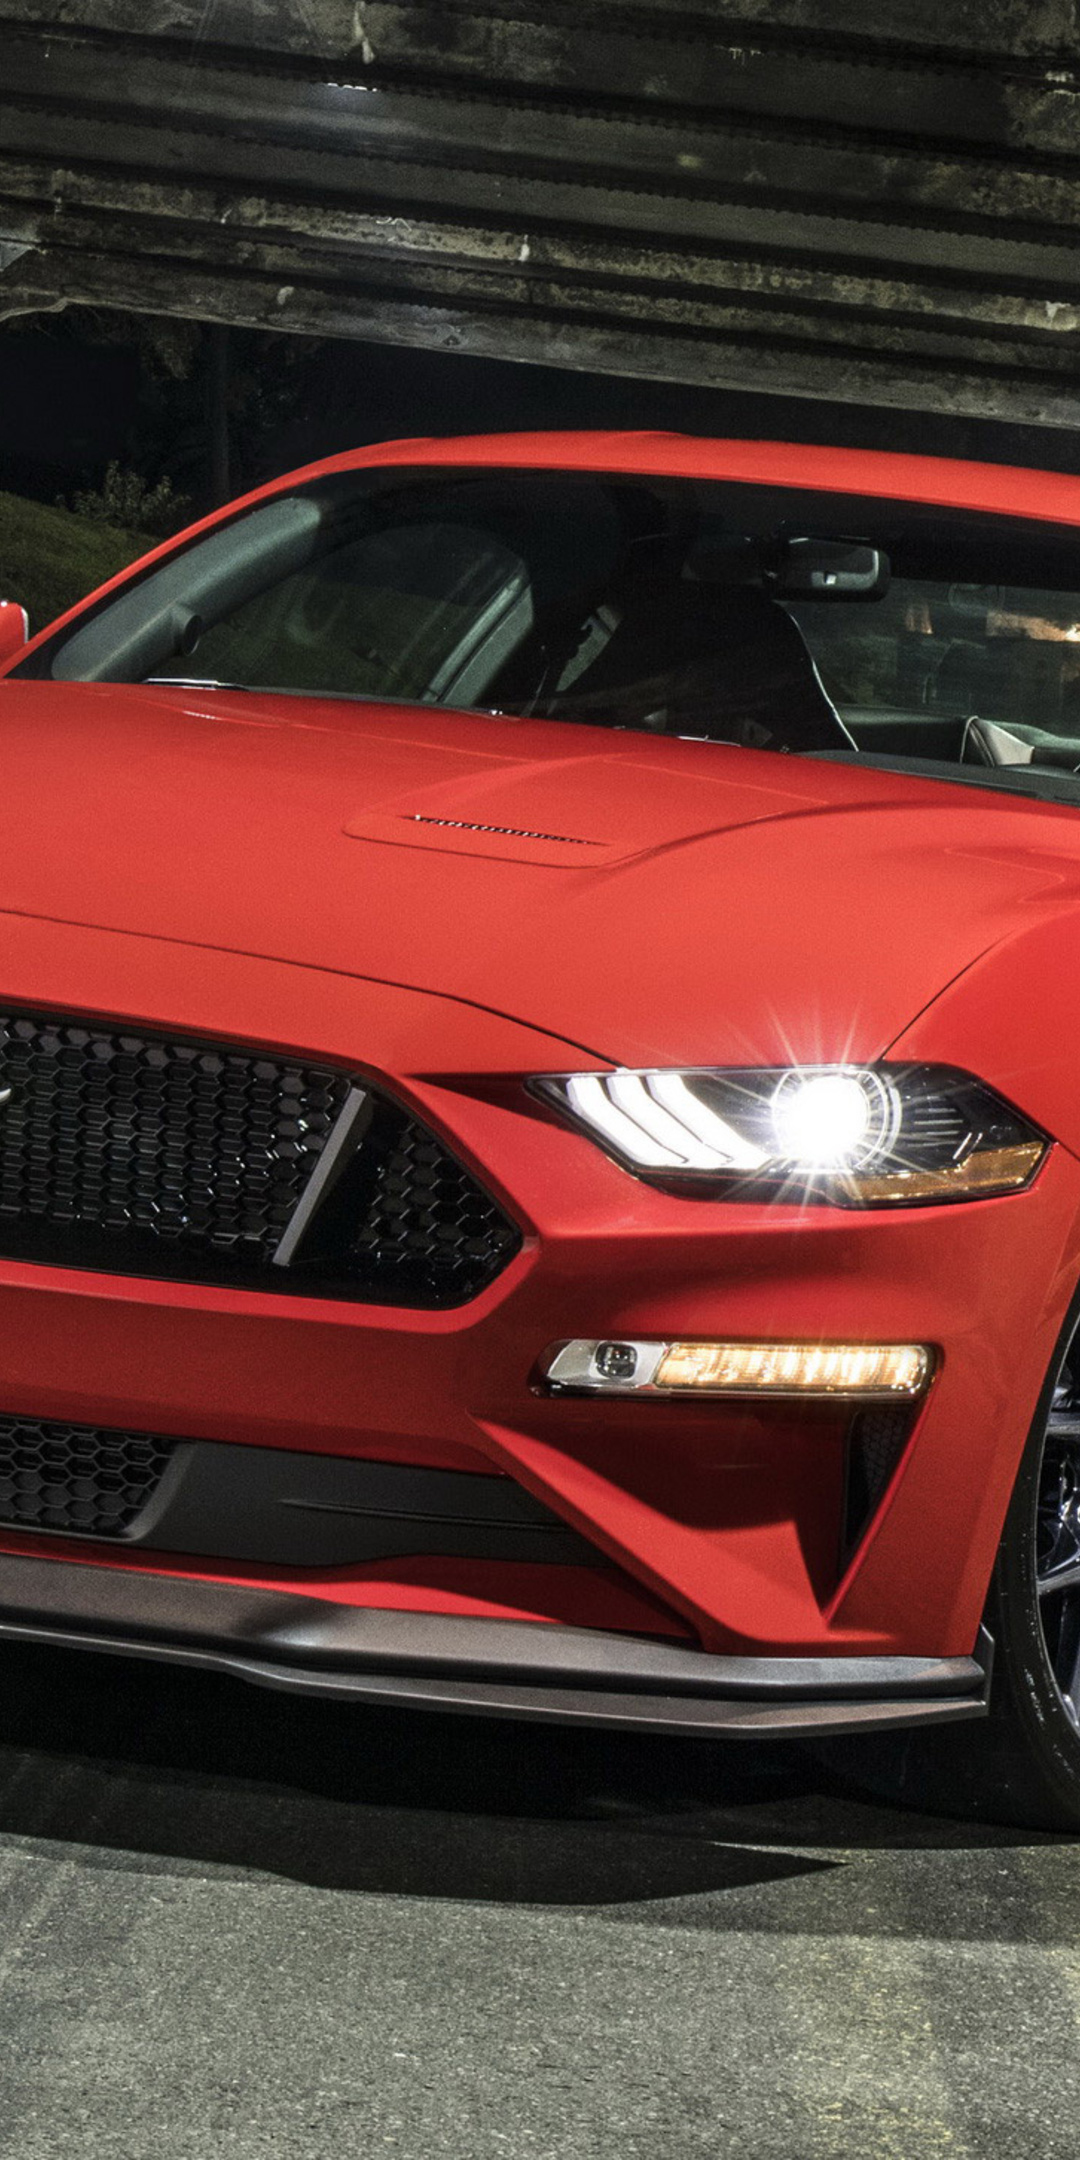 X Ford Mustang GT Performance Pack Level K One Plus - Mustangs plus car show 2018